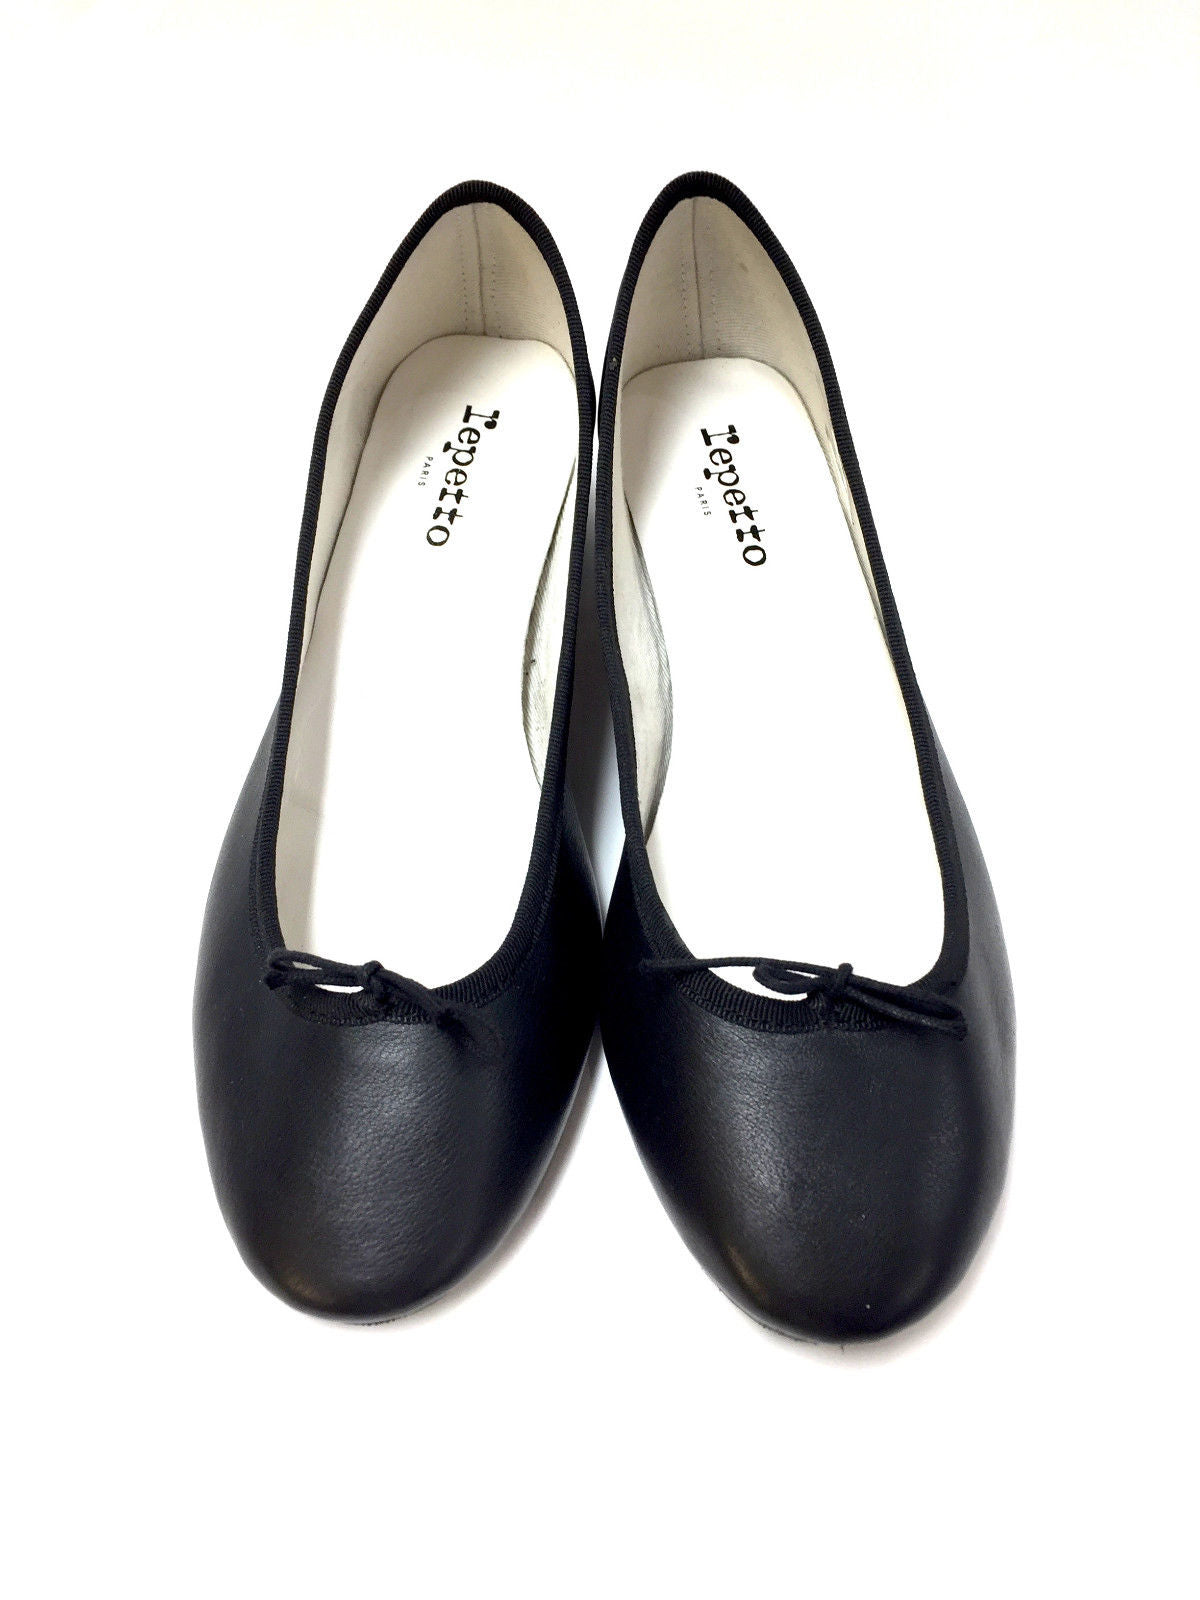 02dad68ec9 REPETTO Black Leather Low Block Heel Bow Ballet Pumps Shoes Size: 10 ...